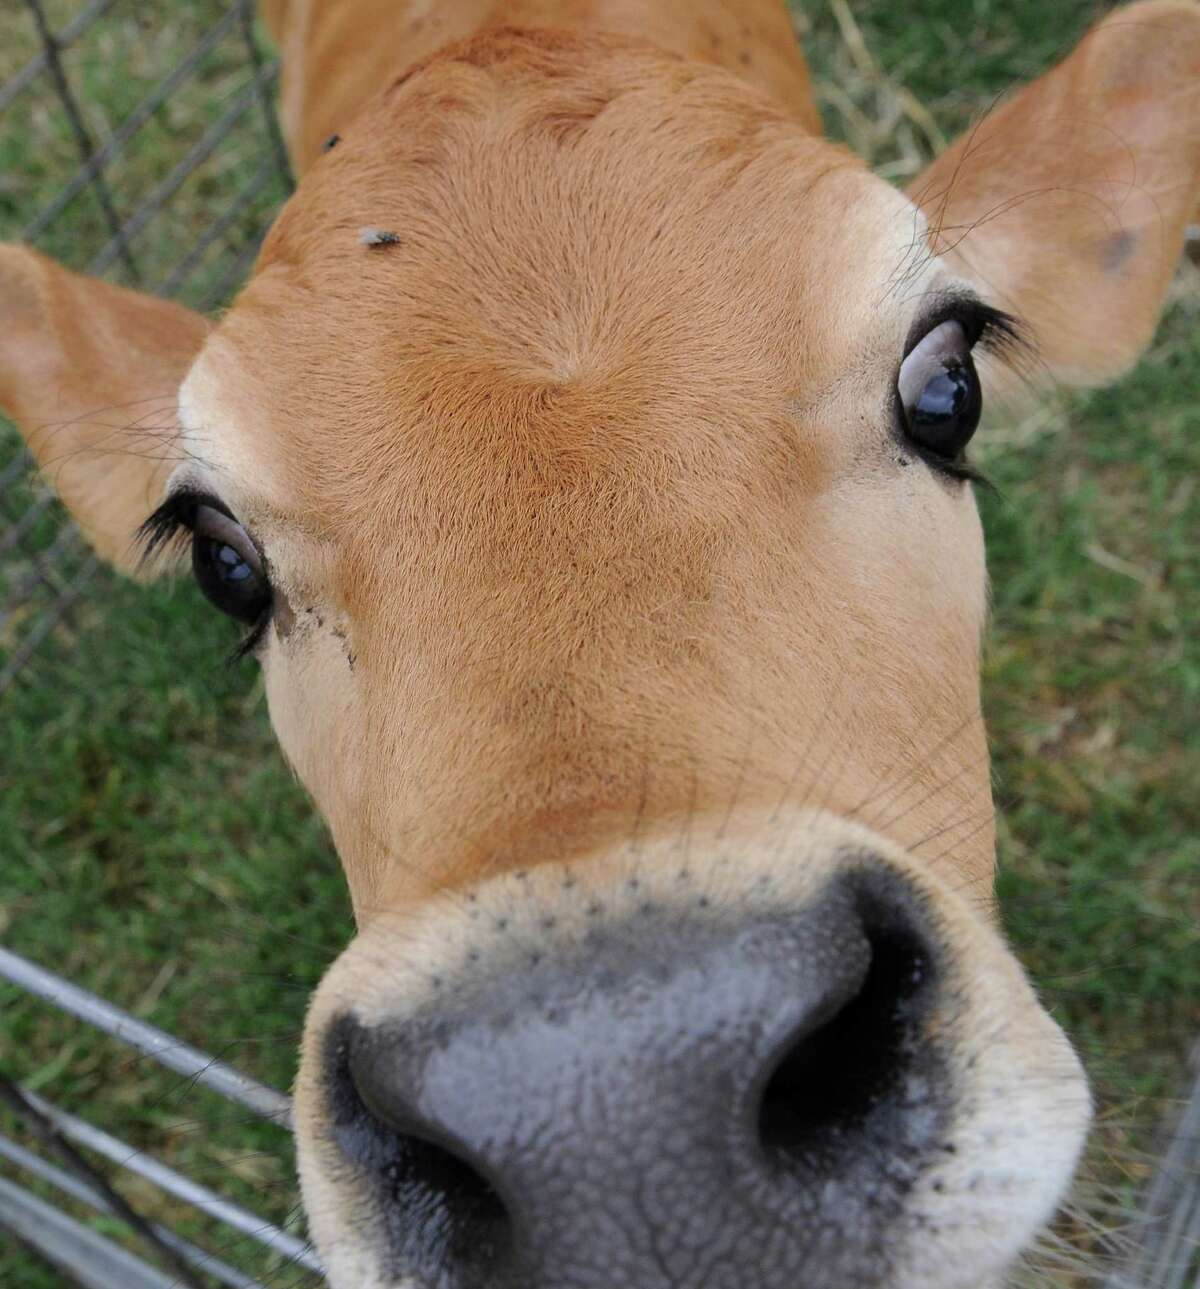 A Jersey calf sniffs at a camera lens at the Stryk Jersey Farm in Schulenberg, Texas.